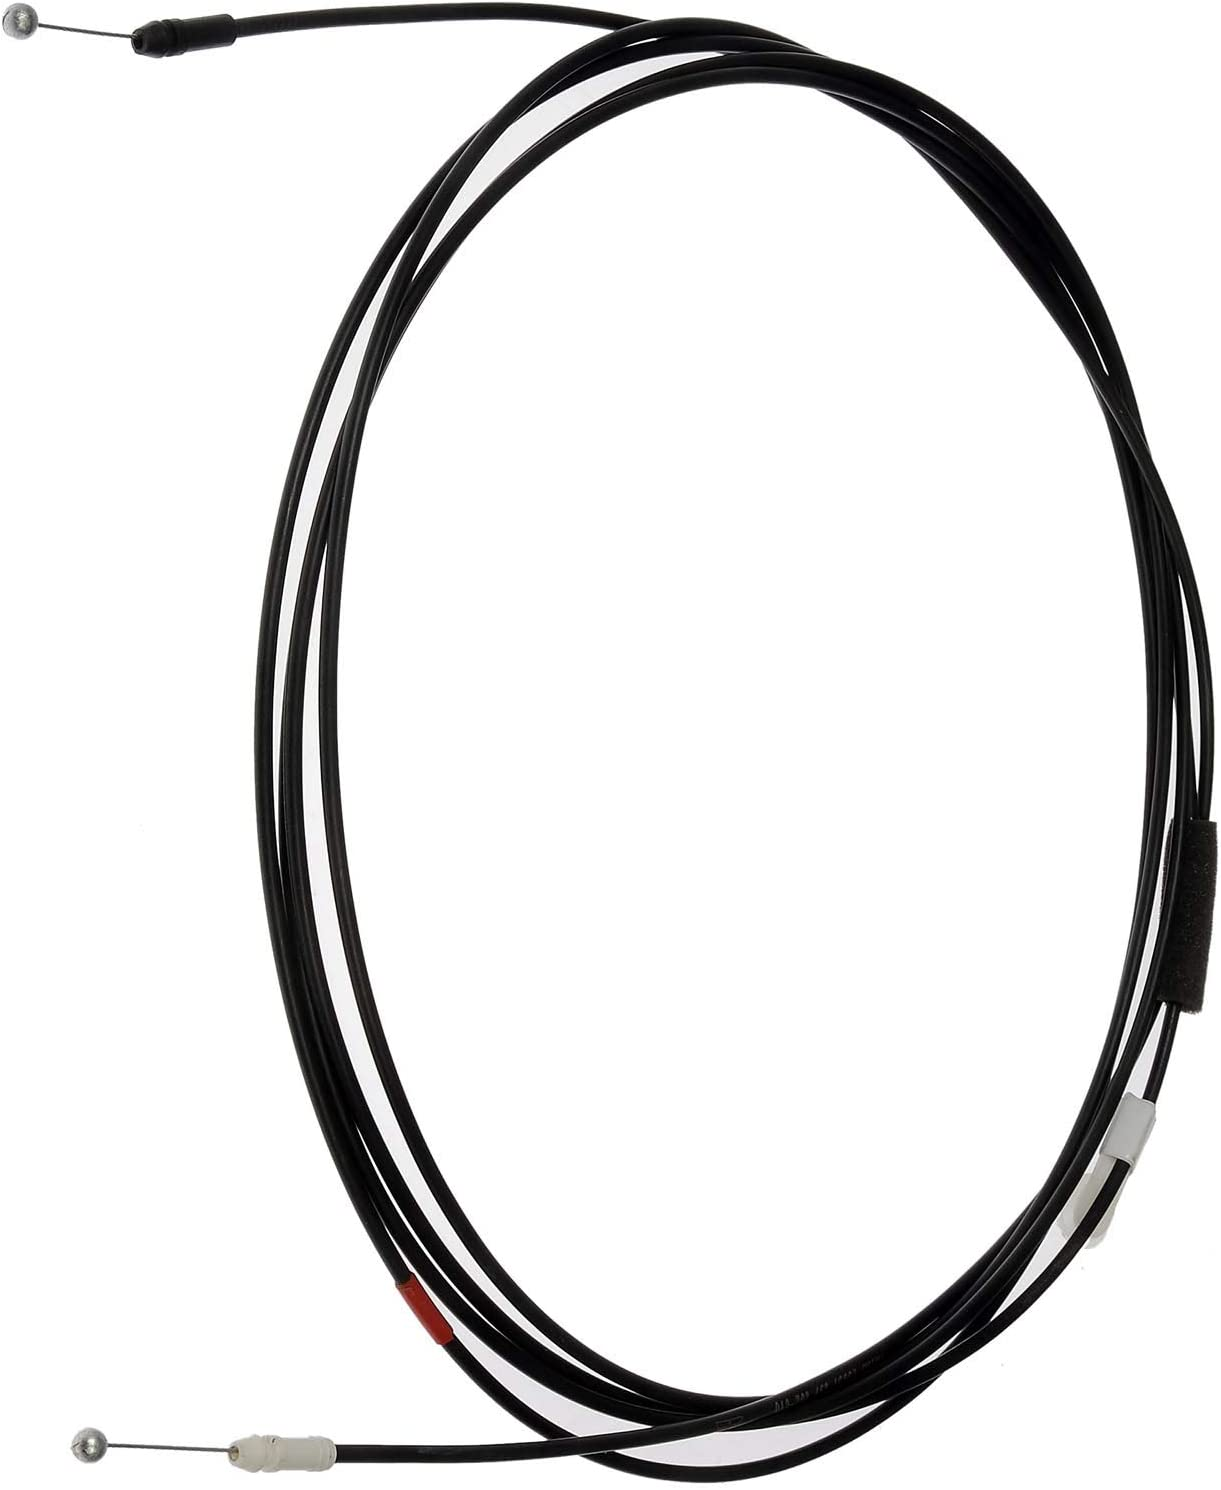 6460706191 APDTY 144840 Trunk Release Cable Assembly Replaces 6460706190